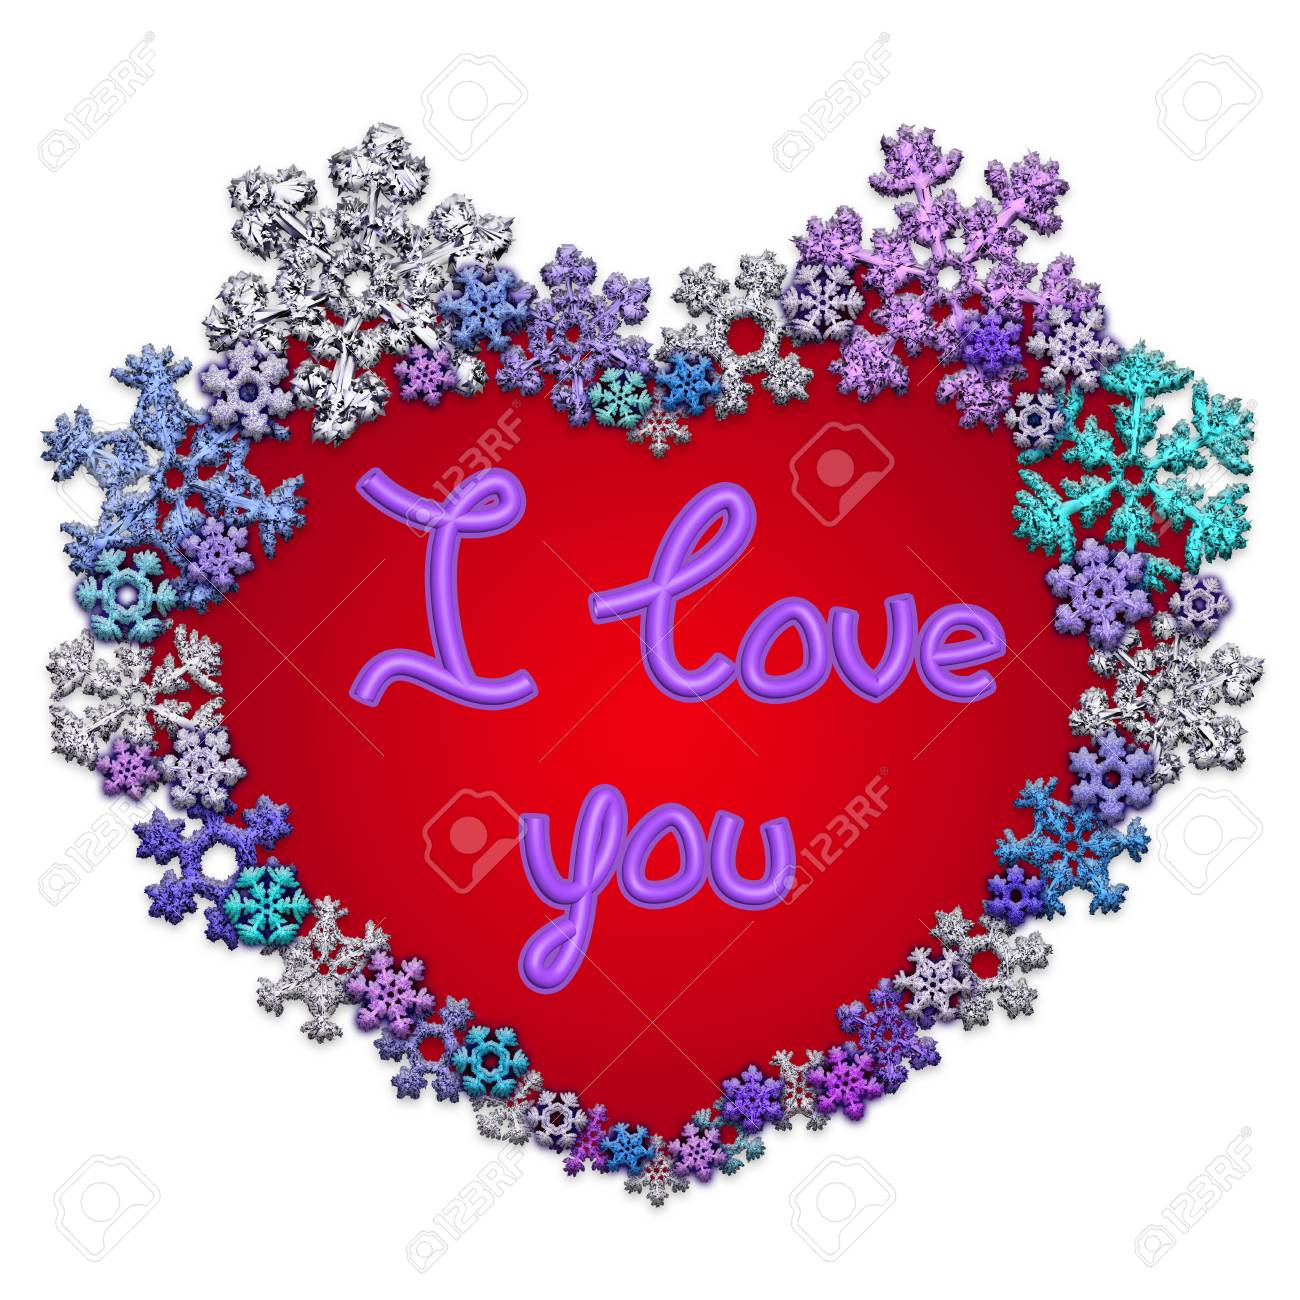 Beautiful Red Heart With Lettering I Love You Made Of Different Stock Photo Picture And Royalty Free Image Image 94247968